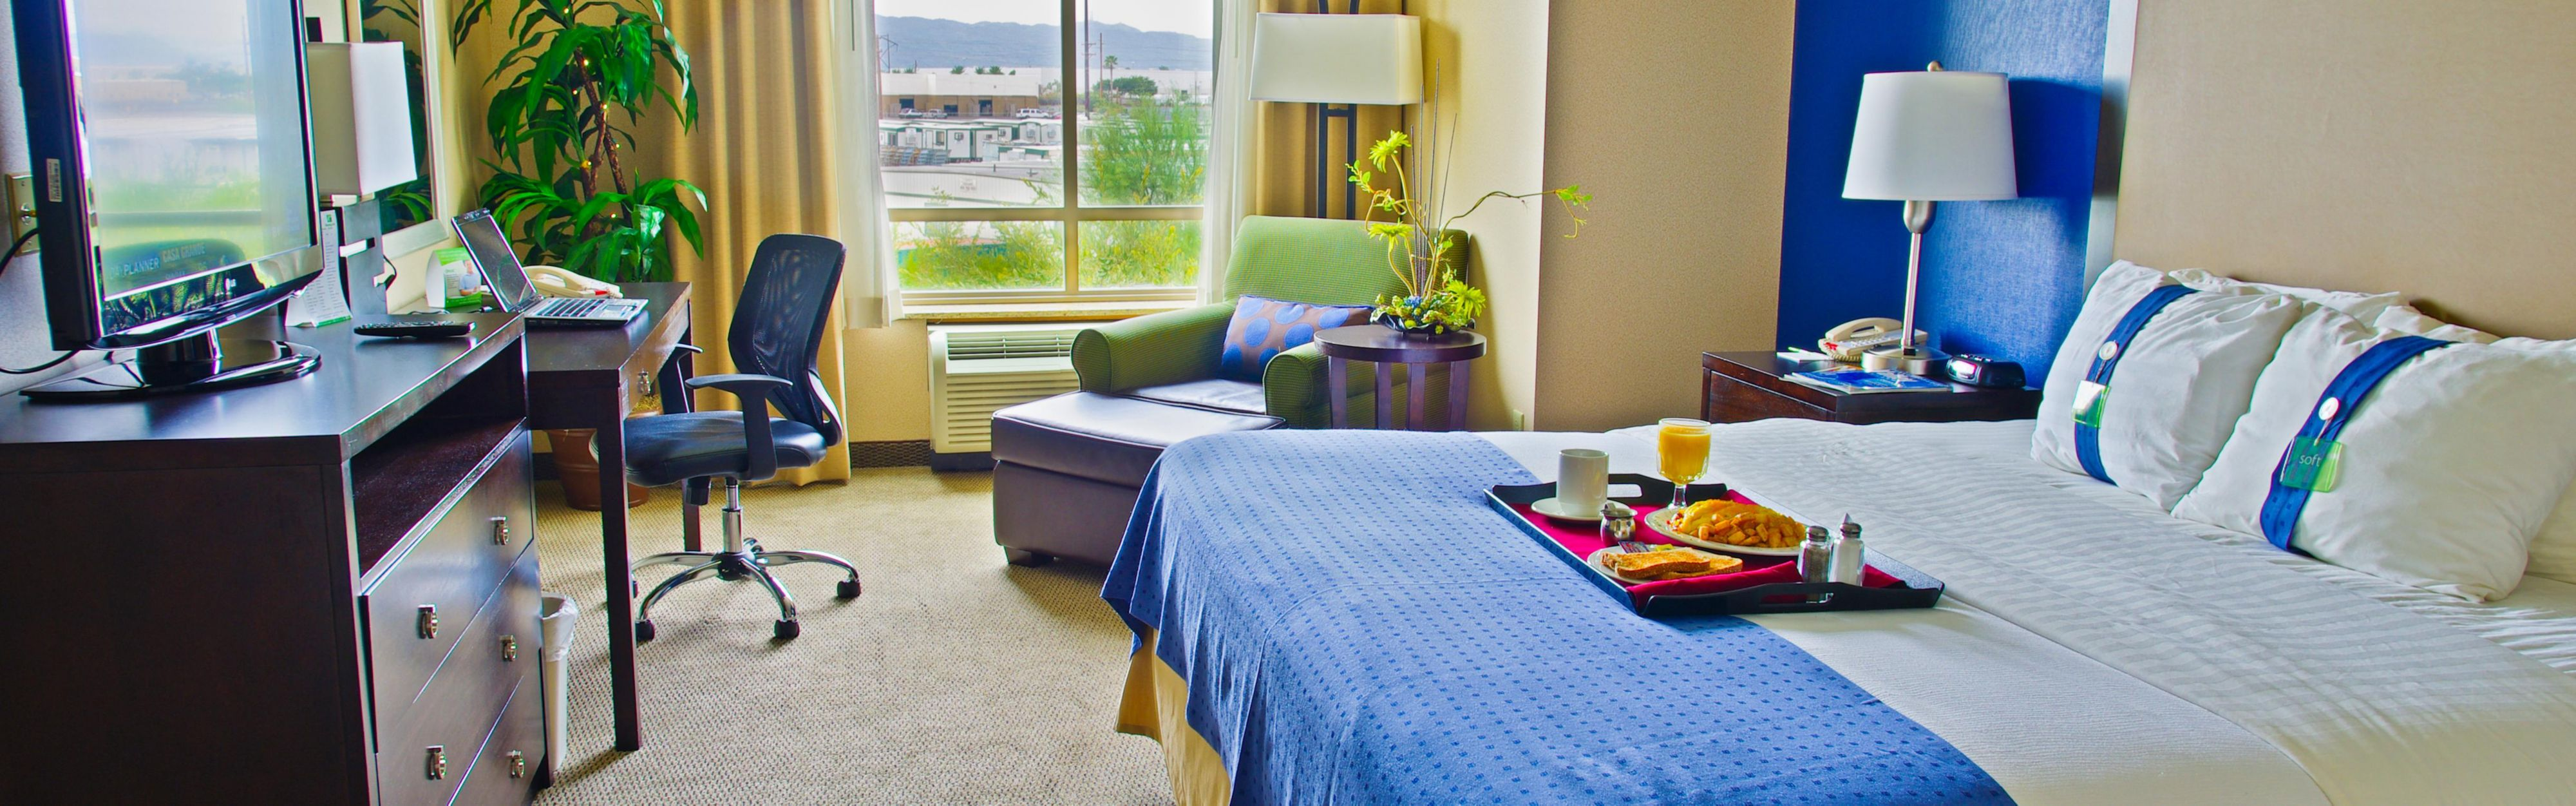 Holiday Inn & Suites Phoenix Airport image 1